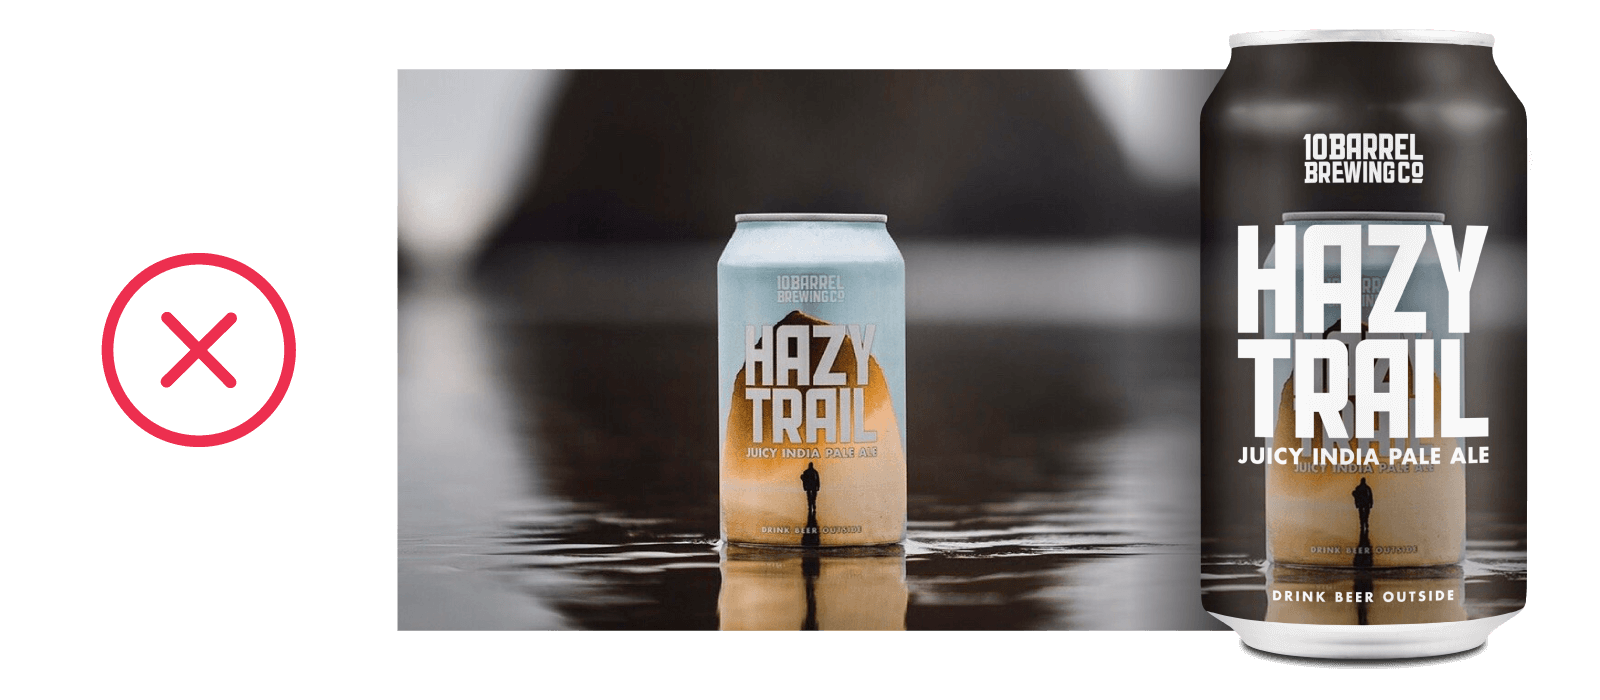 Hazy Trail - Juicy IPA by 10 Barrel Brewing Company, Bend, OR since 2006